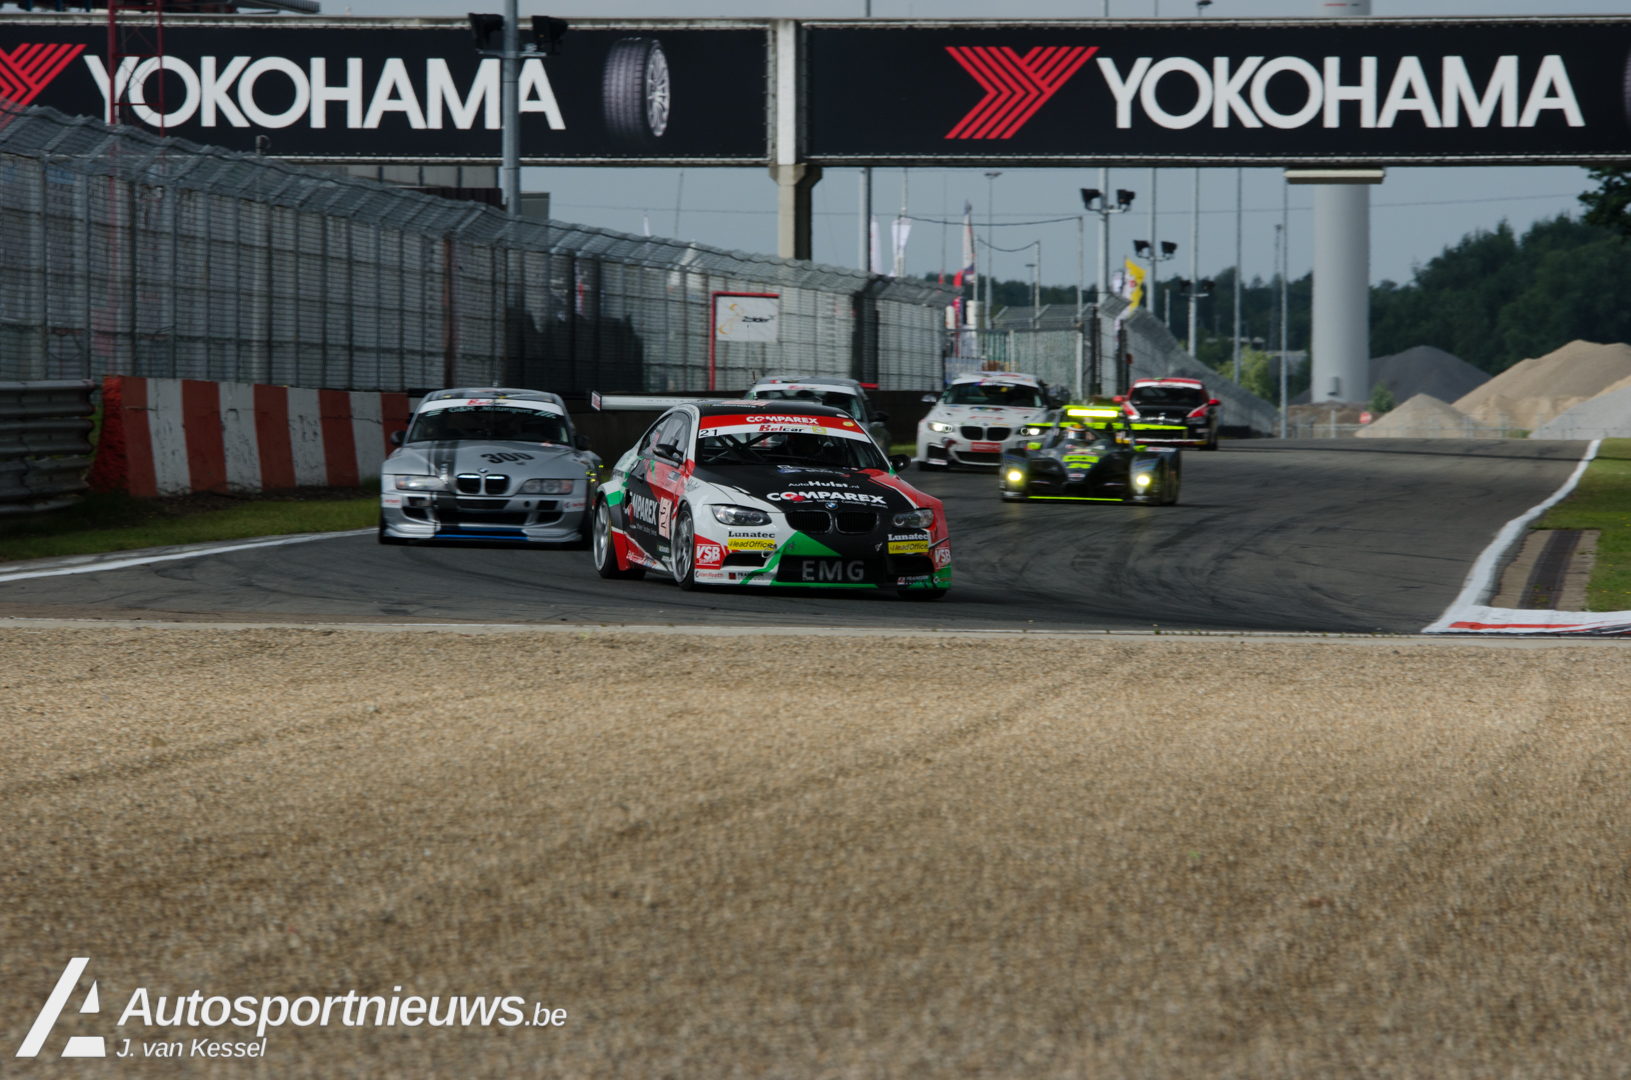 Podiumplaats voor EMG Motorsport in 24 Hours of Zolder